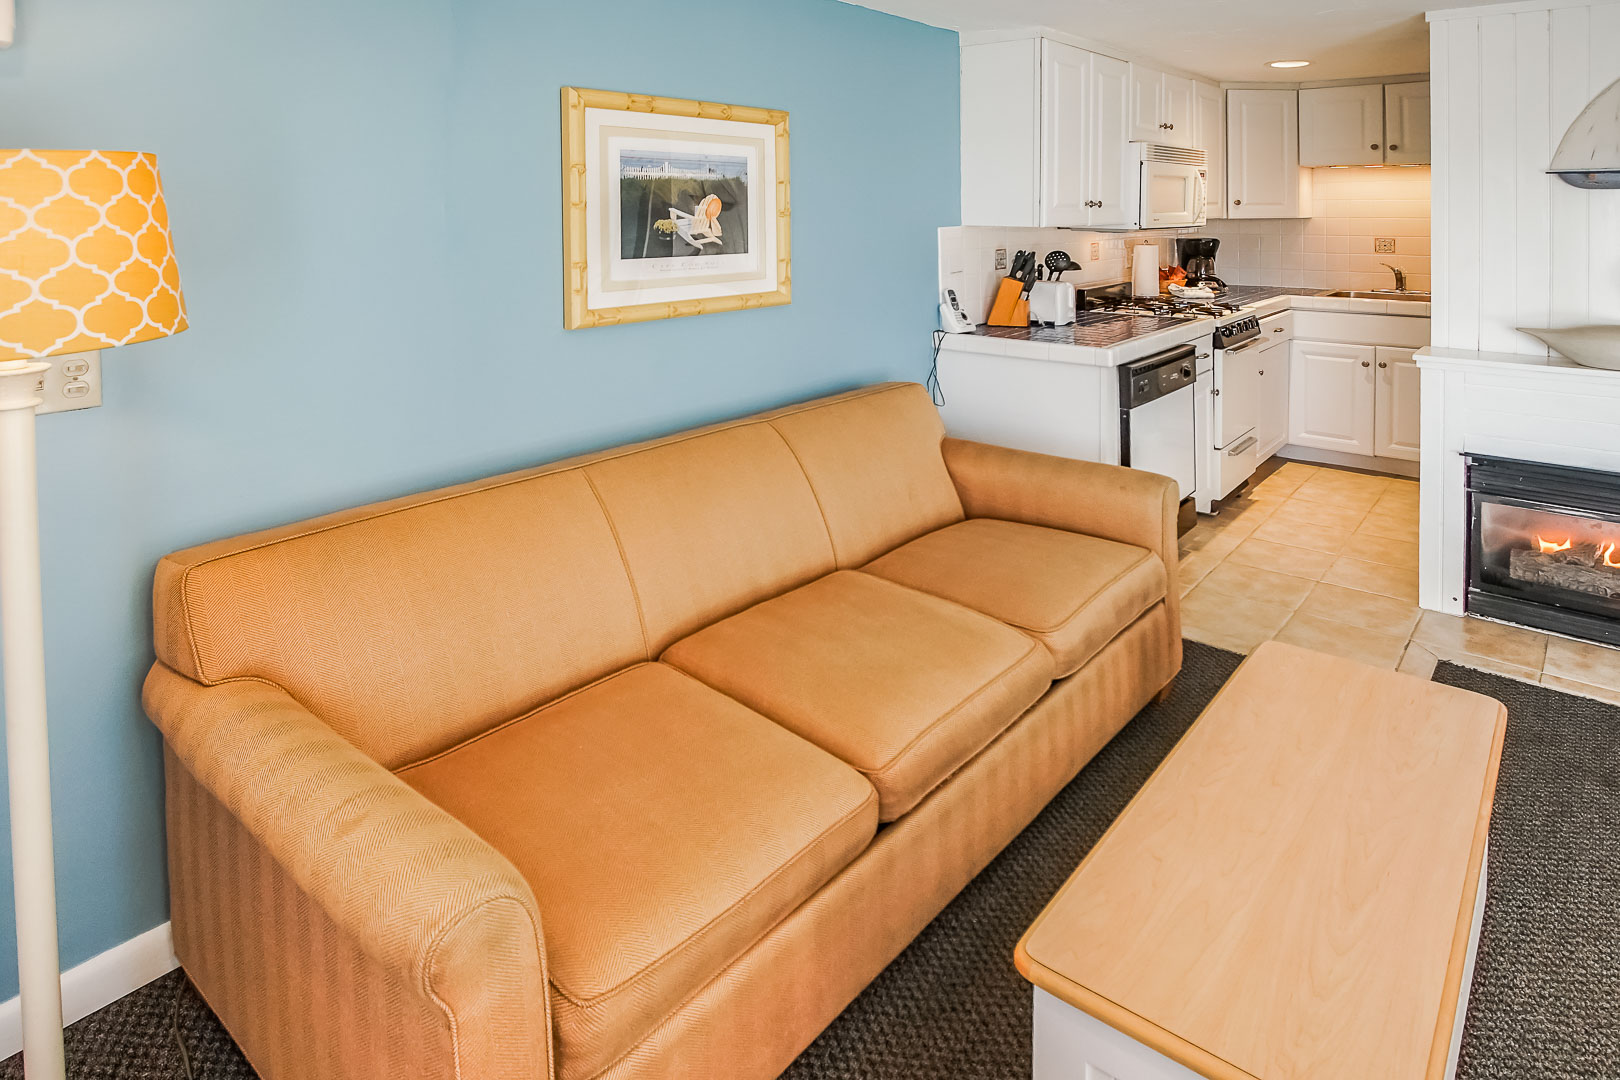 A cozy living room area and kitchen at VRI's Seawinds II Resort in Massachusetts.